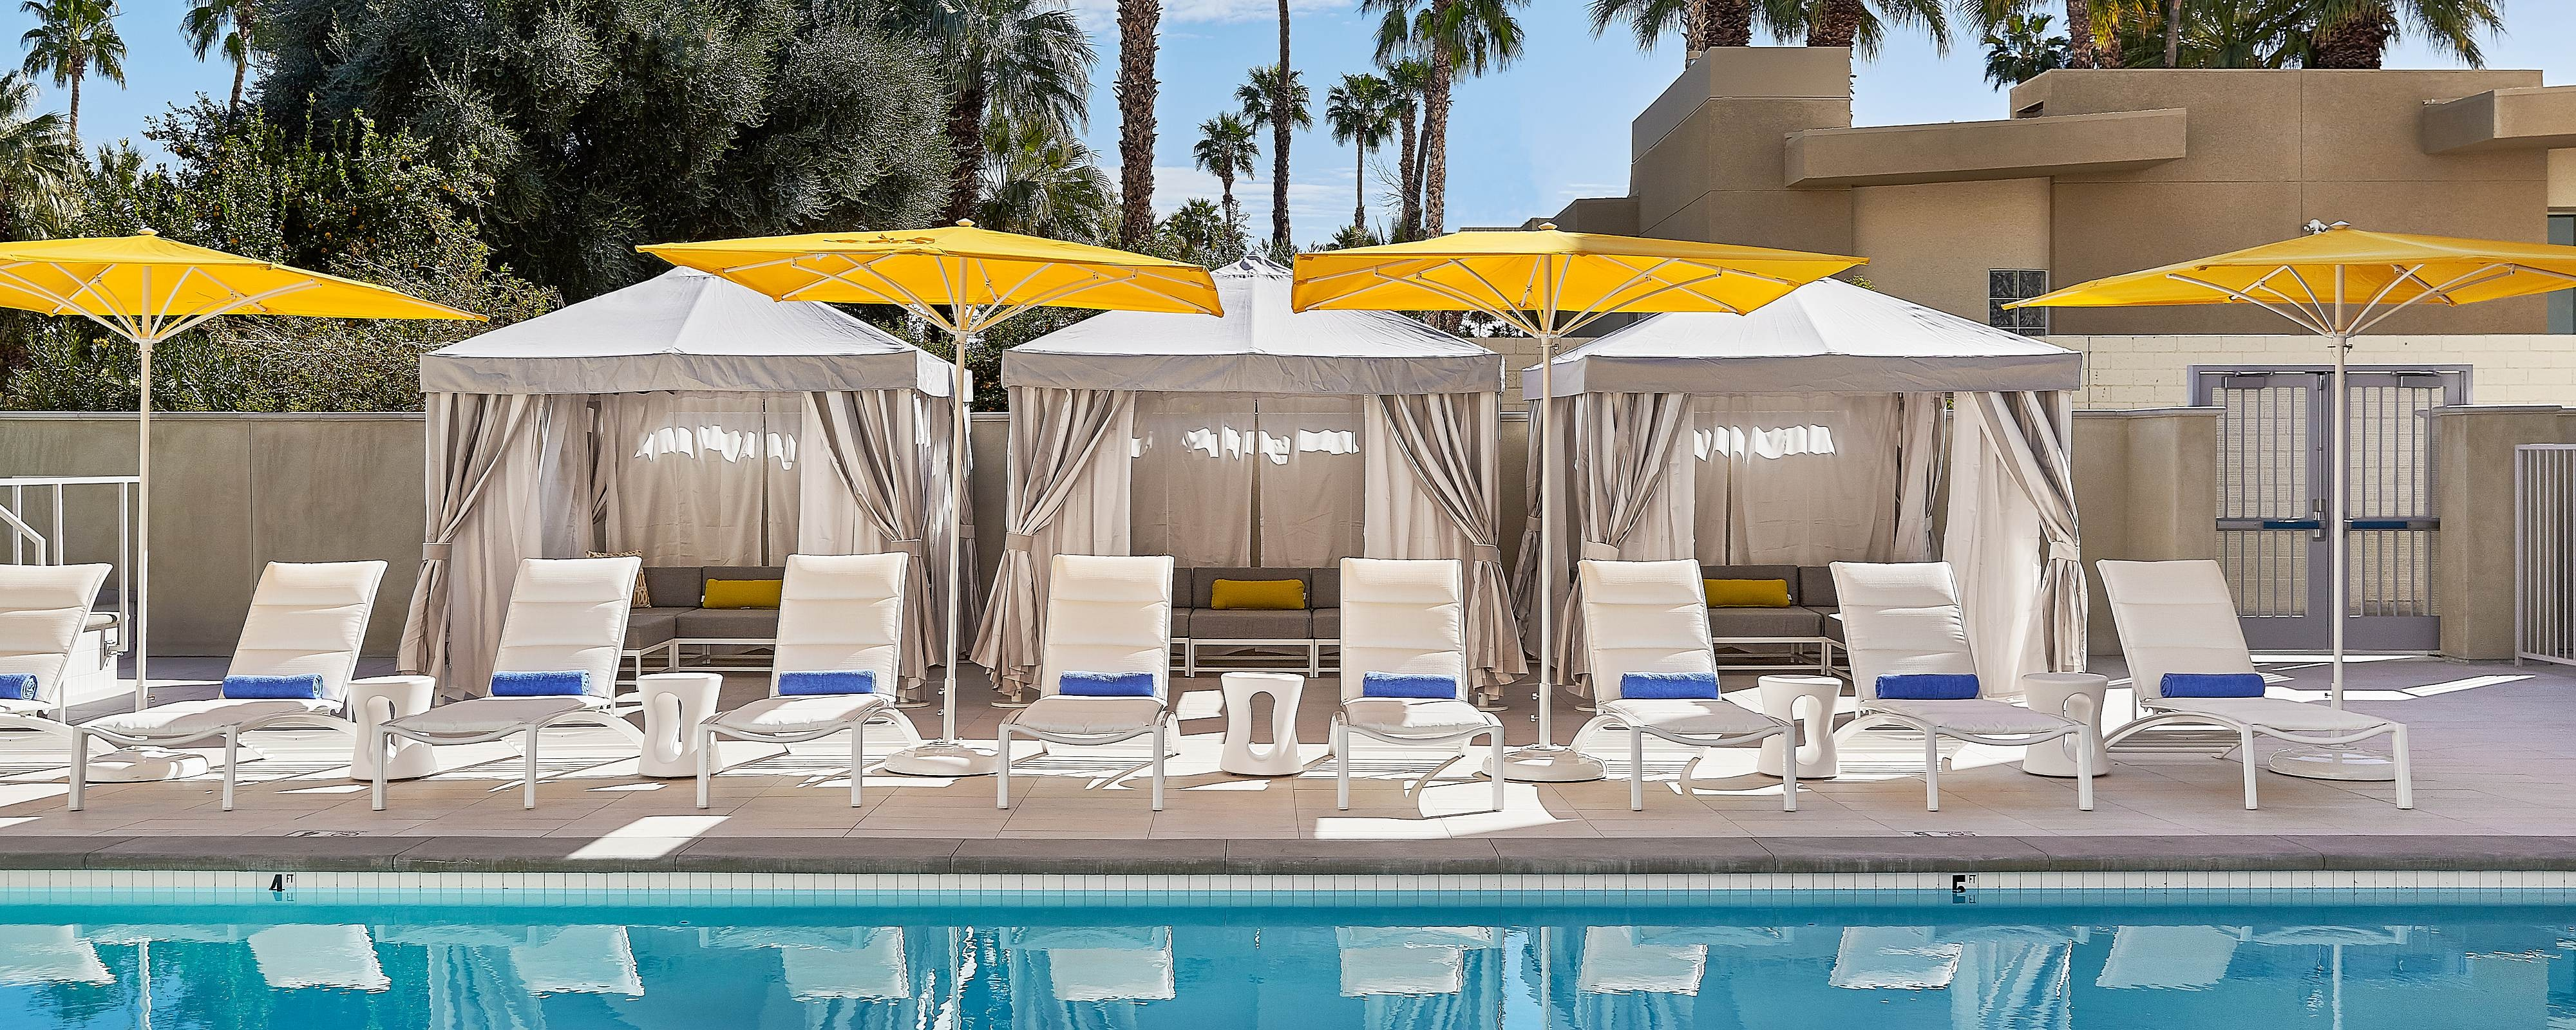 Hotel Paseo A Luxury Boutique Hotel In Palm Desert California